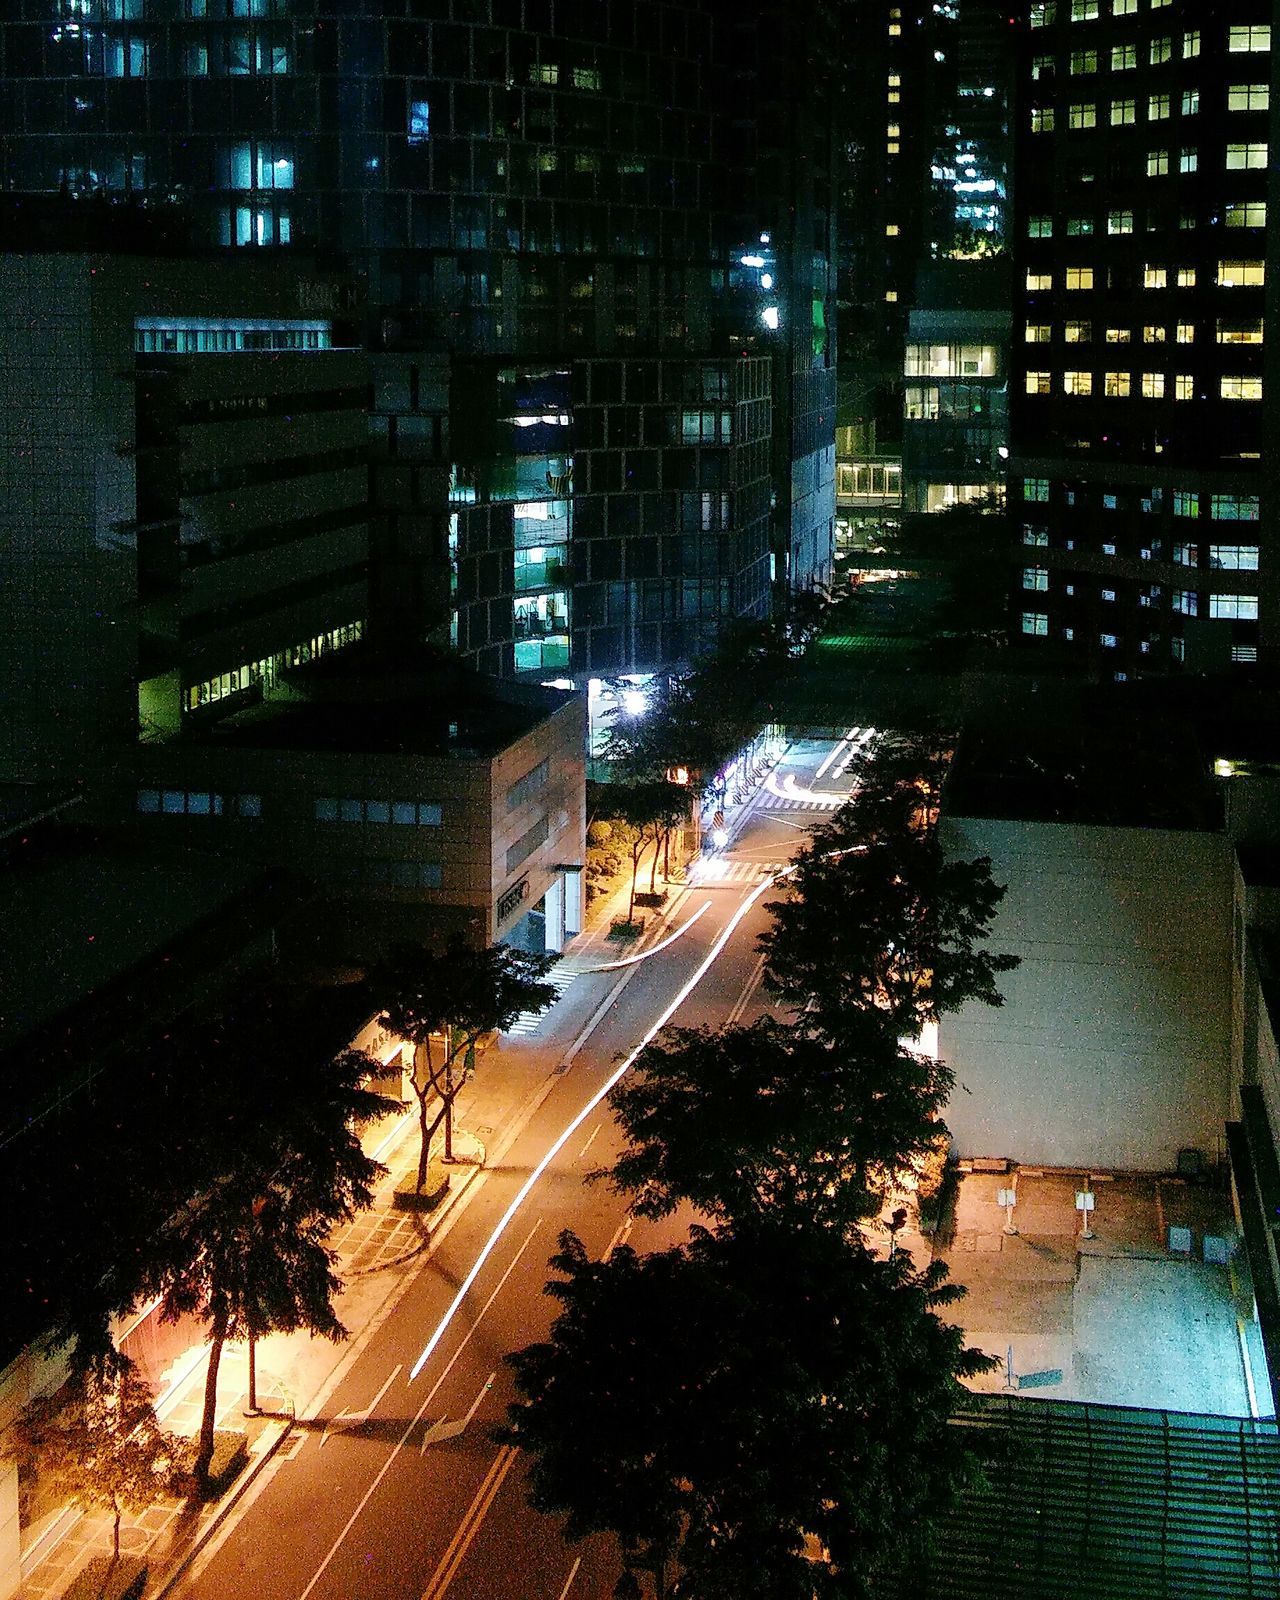 Speed of light. Night High Angle View Illuminated City Building Exterior Built Structure Architecture Road No People EyeEmNewHere City City Lights Cityscape Let's Go. Together.